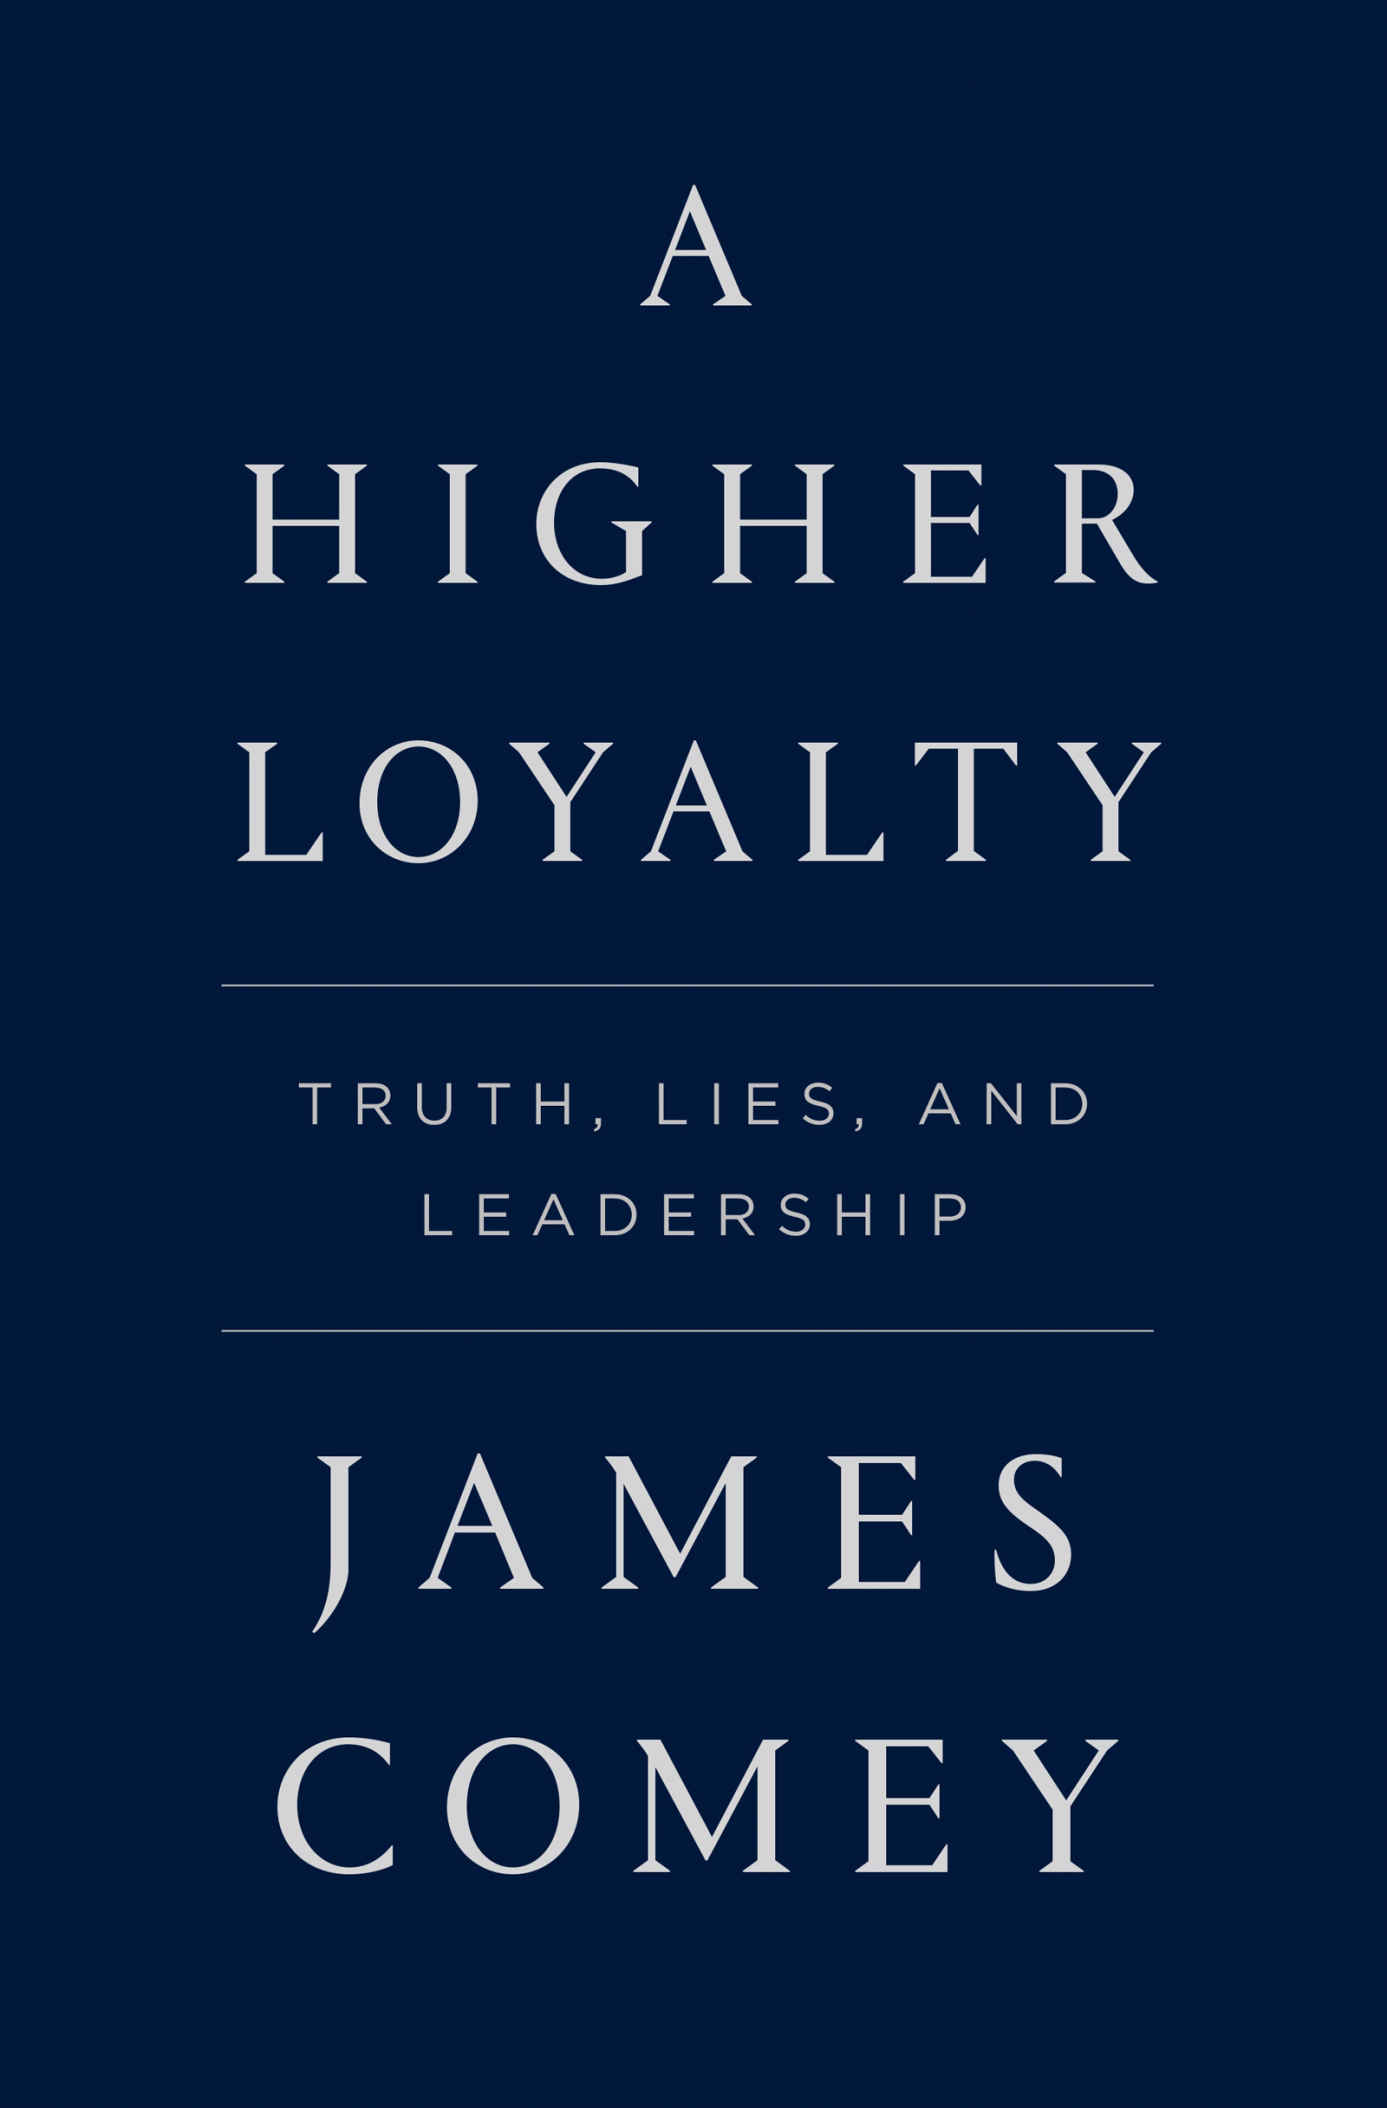 A Higher Loyalty: Truth, Lies, and Leadership - James Comey [kindle] [mobi]